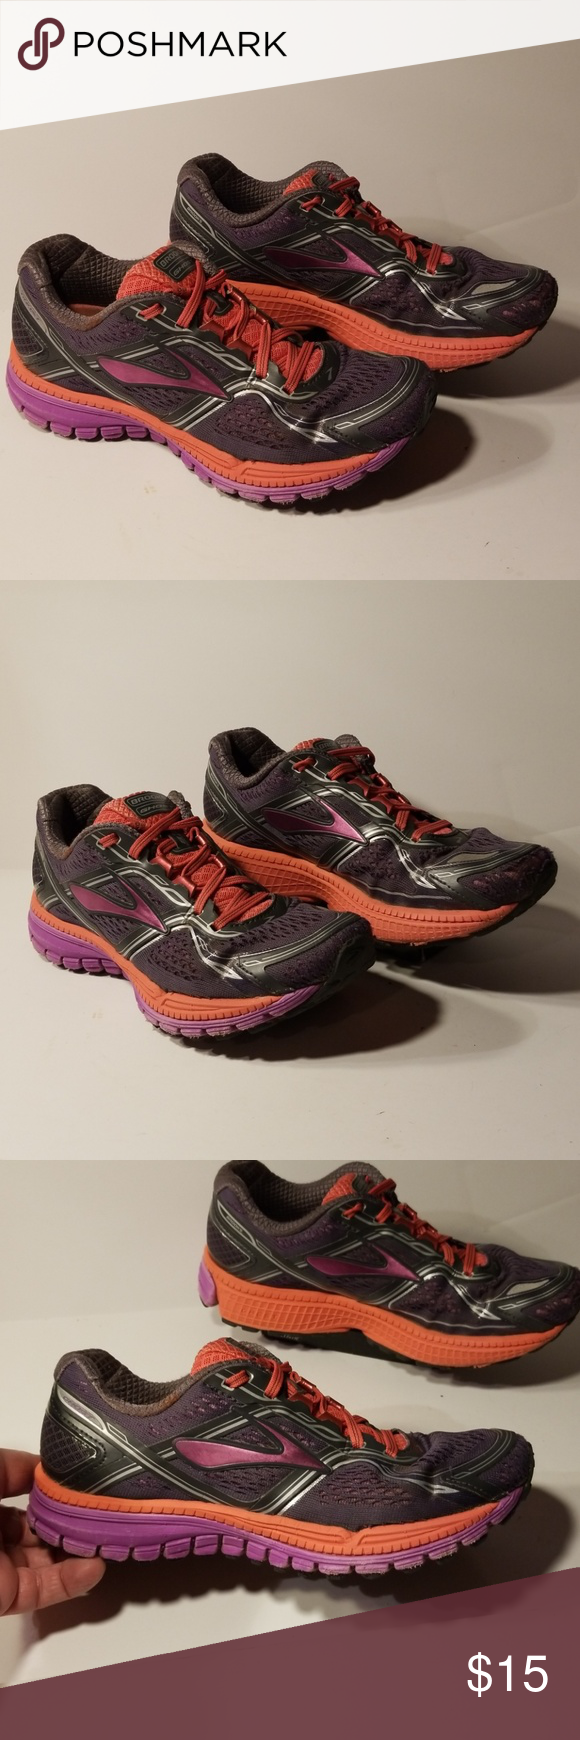 7d505eadf65 Brooks Ghost 8 women s shoes size 7.5 B Good used condition shoes Brooks  Shoes Athletic Shoes